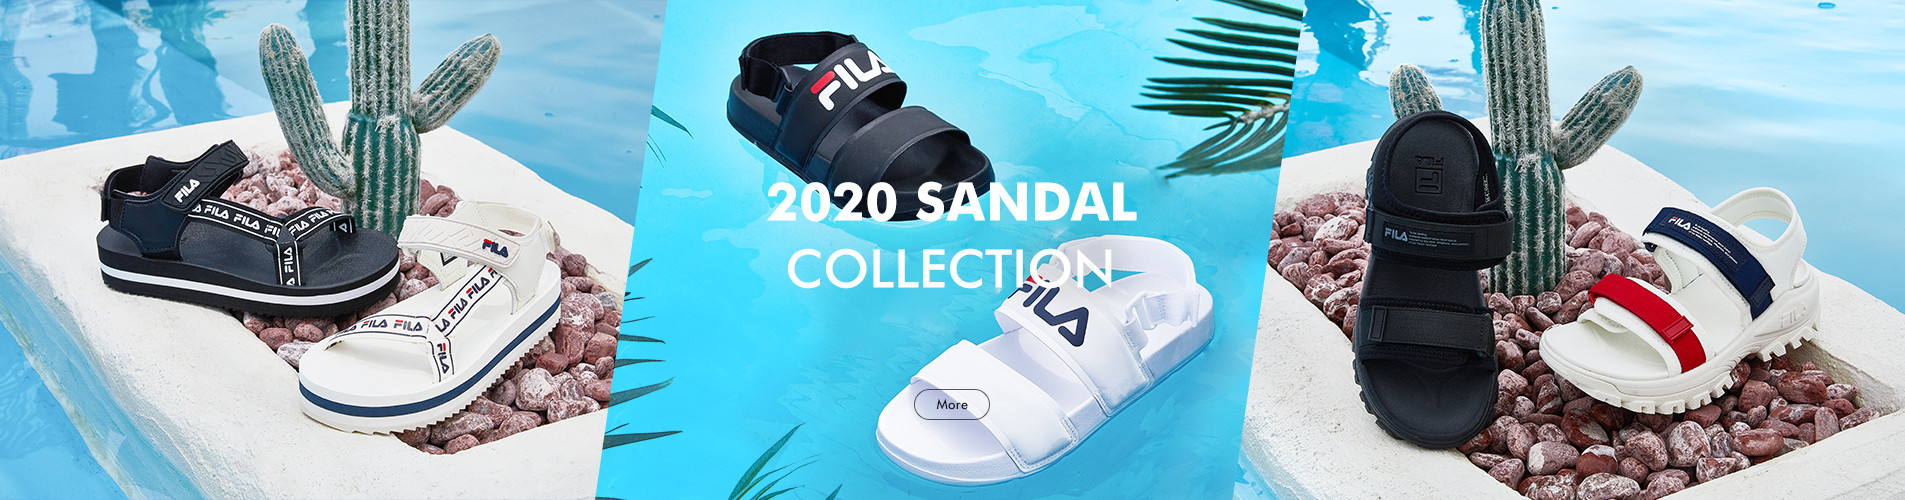 2020 SANDAL COLLECTION